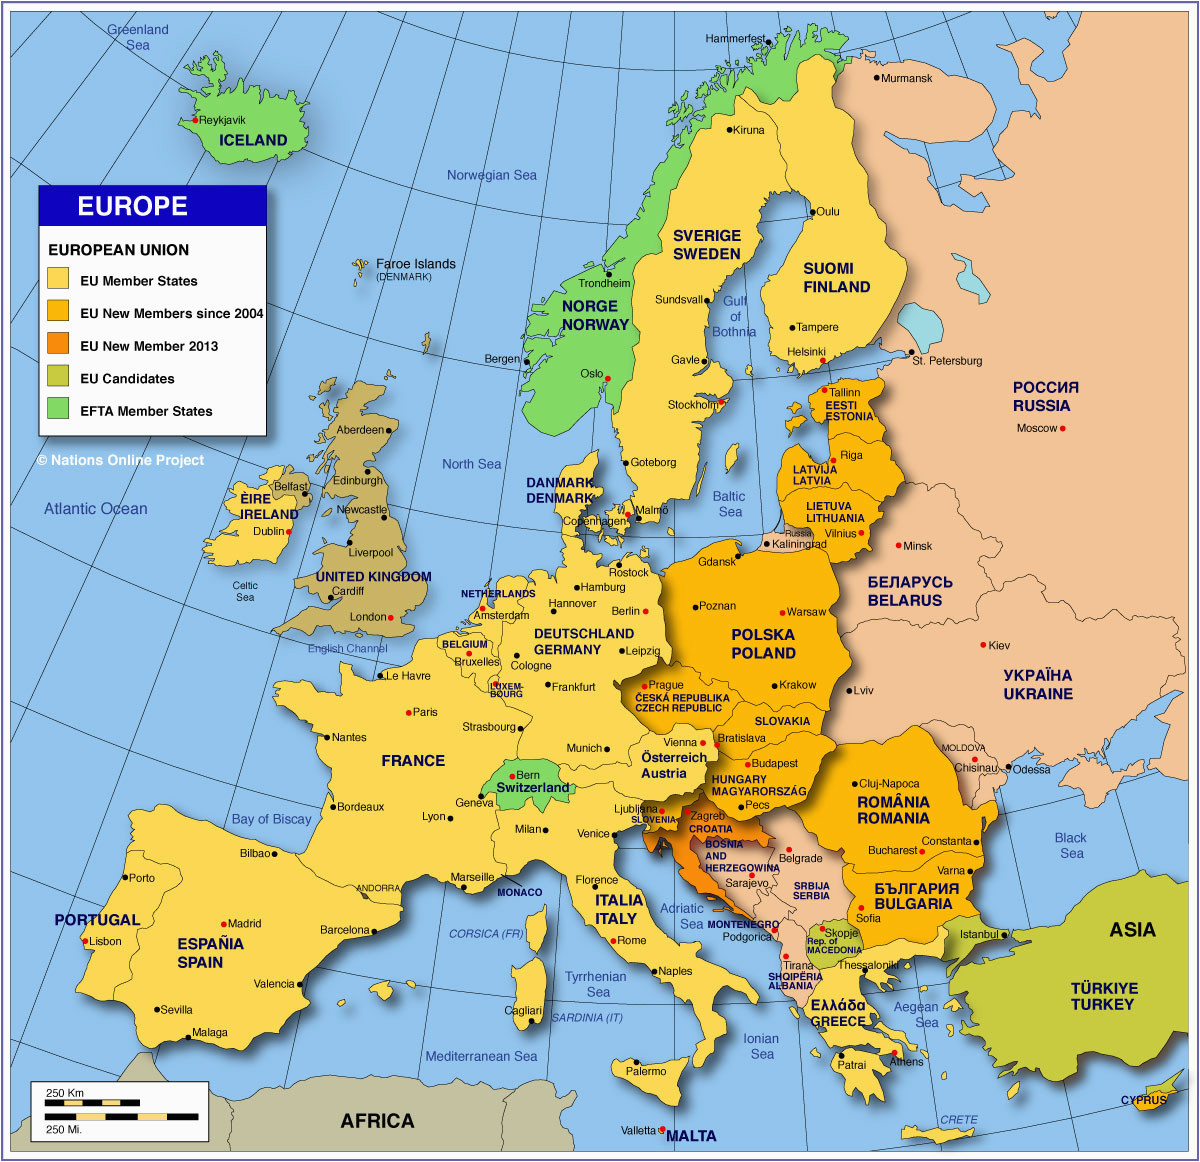 Map Of Europe Showing Italy.Map Of Europe Showing Italy Map Of Europe Member States Of The Eu